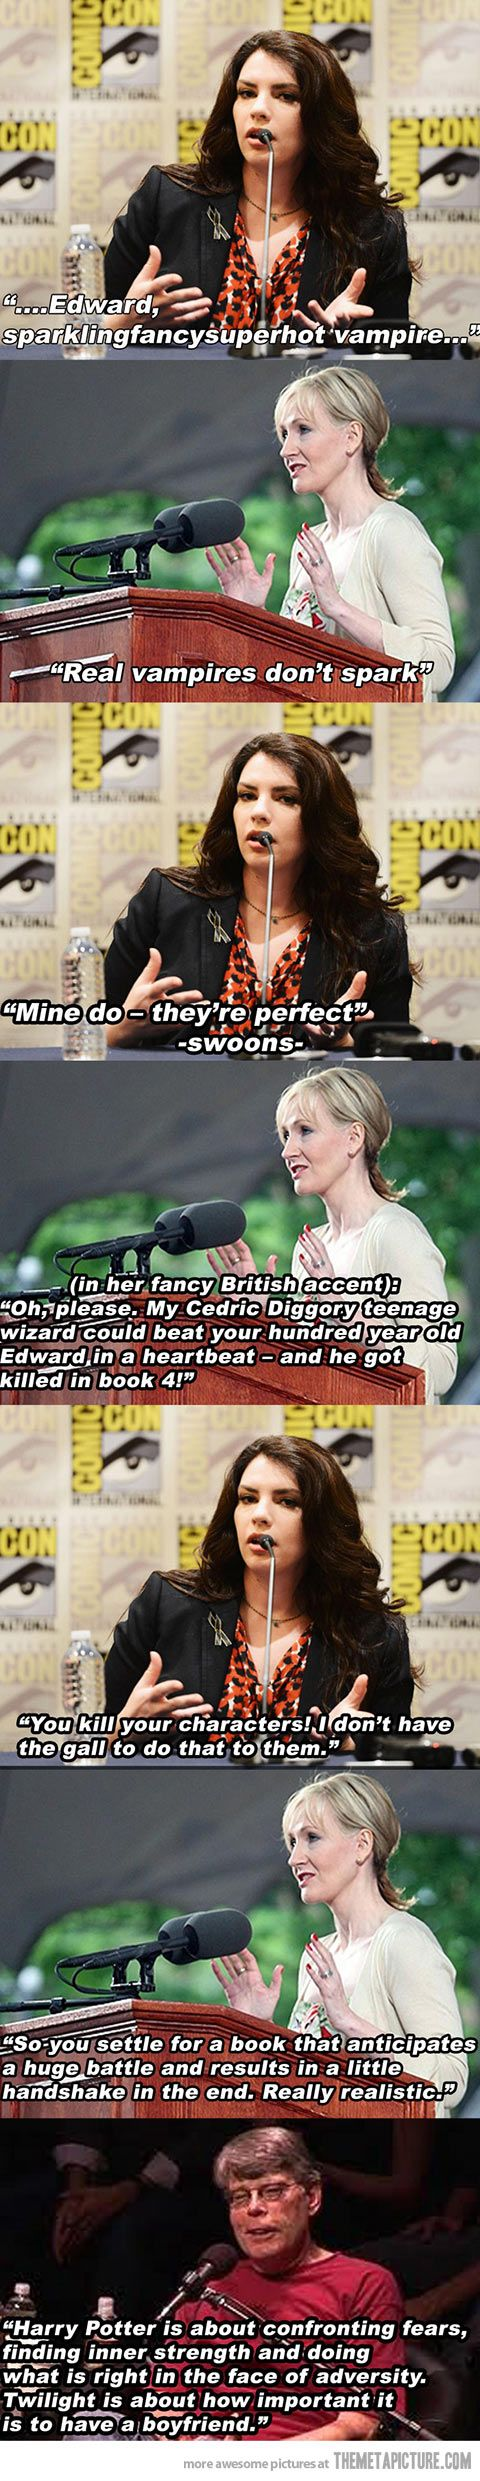 Stephanie Meyer vs. J.K. Rowling… Go Rowling!